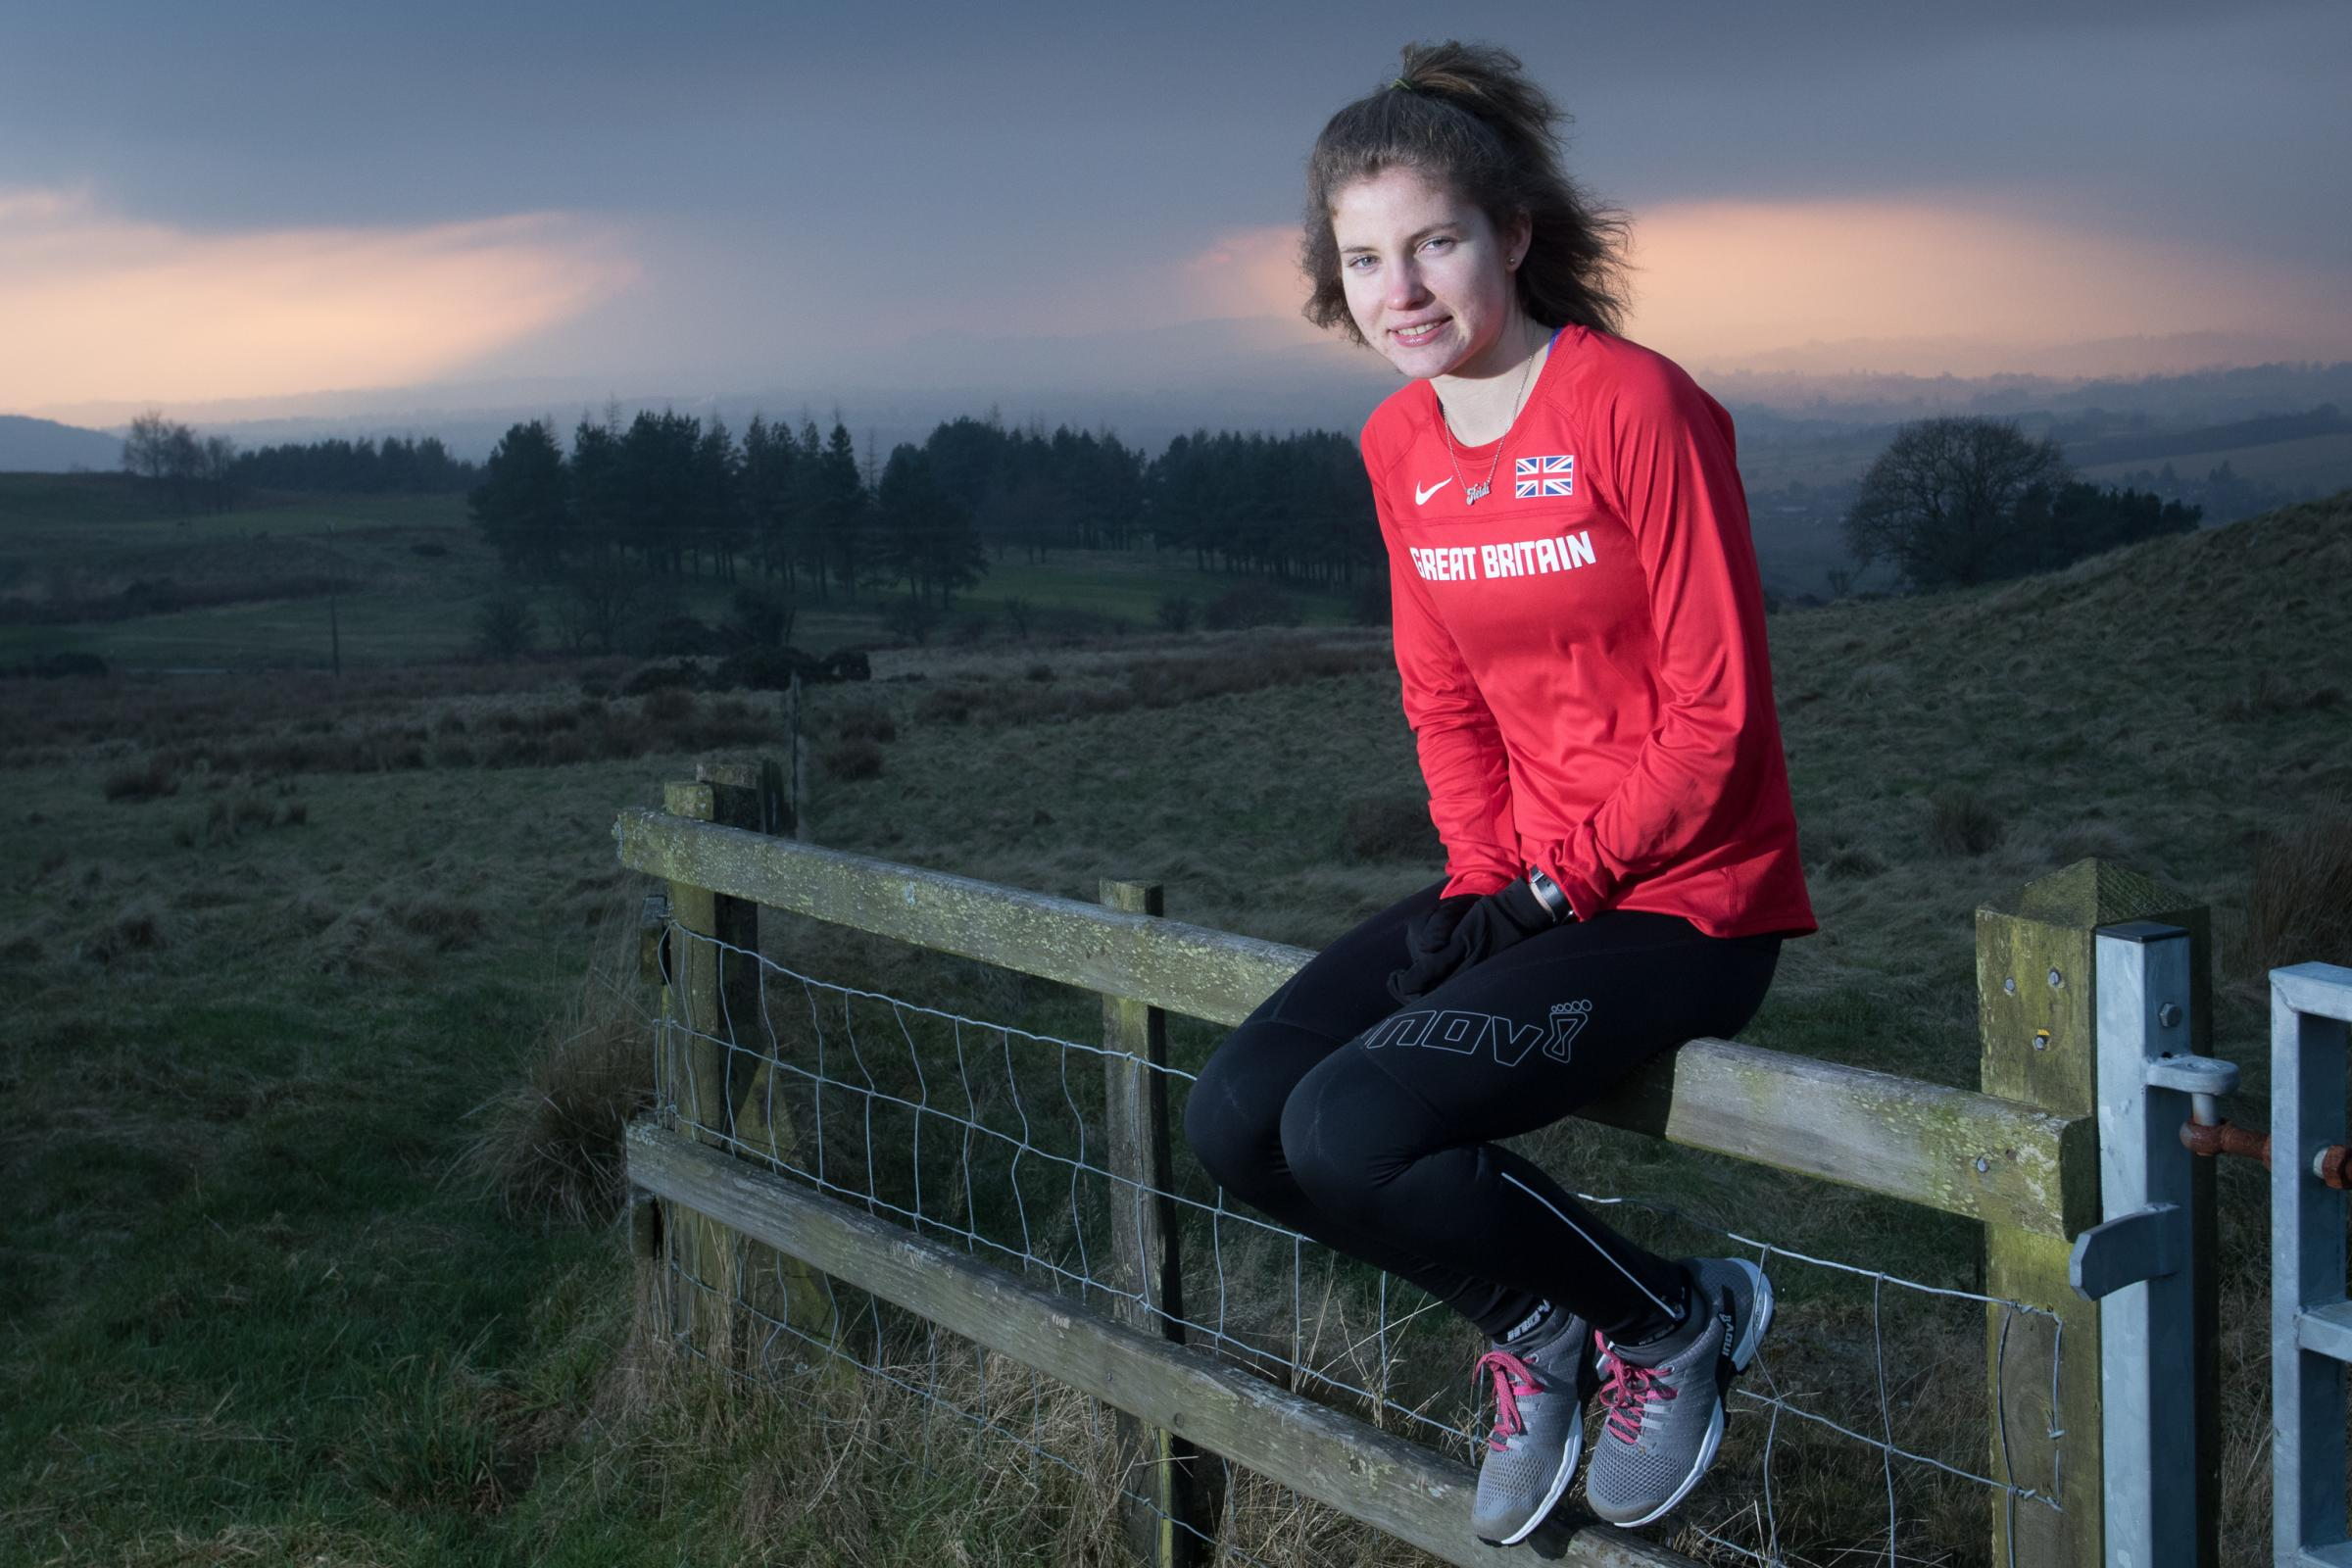 Great Britain mountain runner Heidi Davies, from Llandrindod Wells. Pic: Mike Sheridan/County TimesMS352-2017